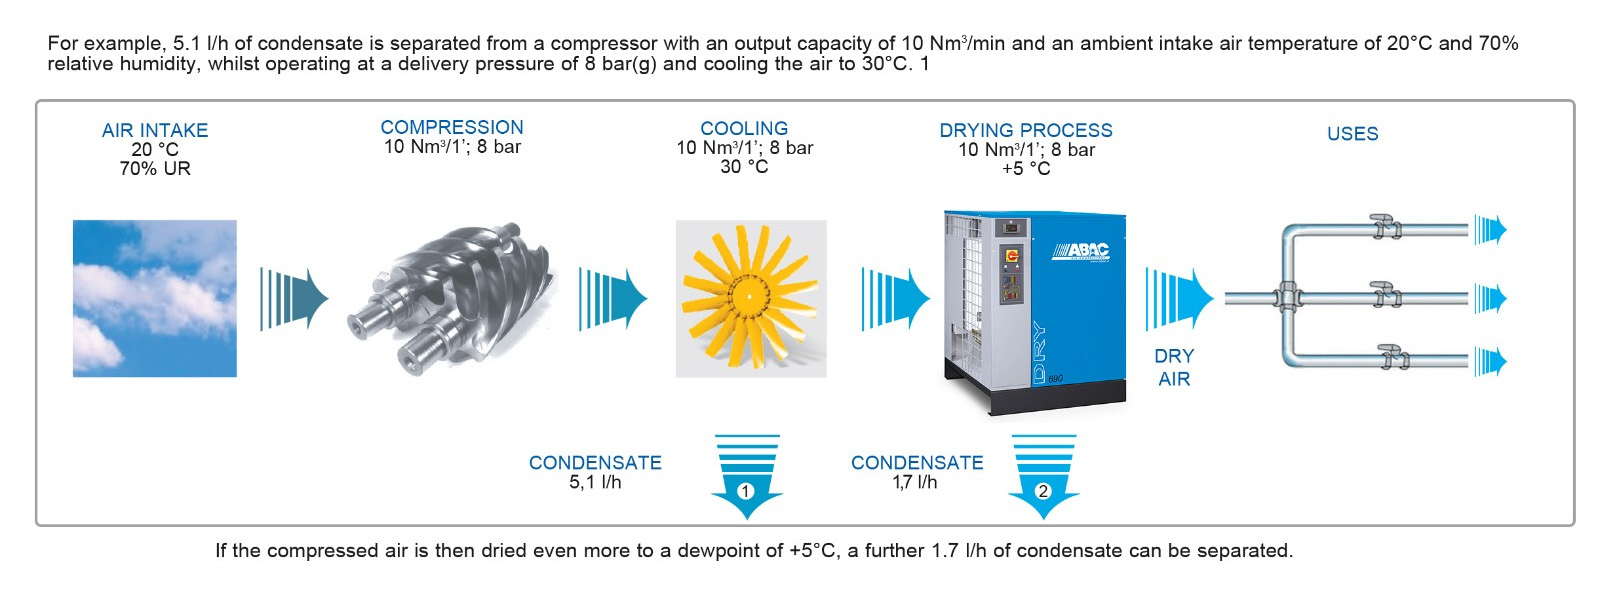 Compressed air dryers | Air Compressor | Air Power